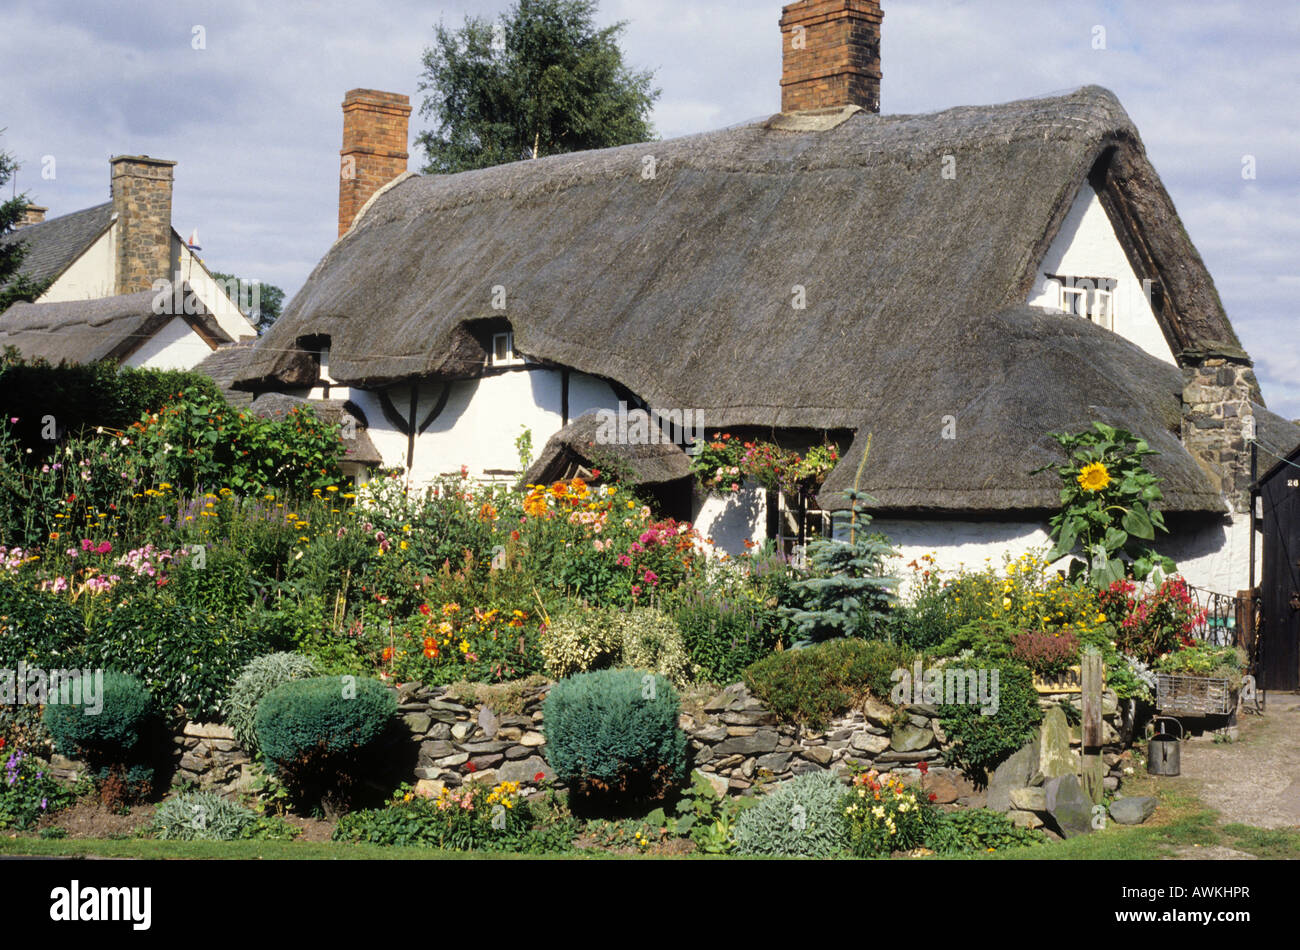 Traditional English Thatched Country Cottage Pest Cottage Woodhouse Leicestershire garden flowers plants charm charming - Stock Image